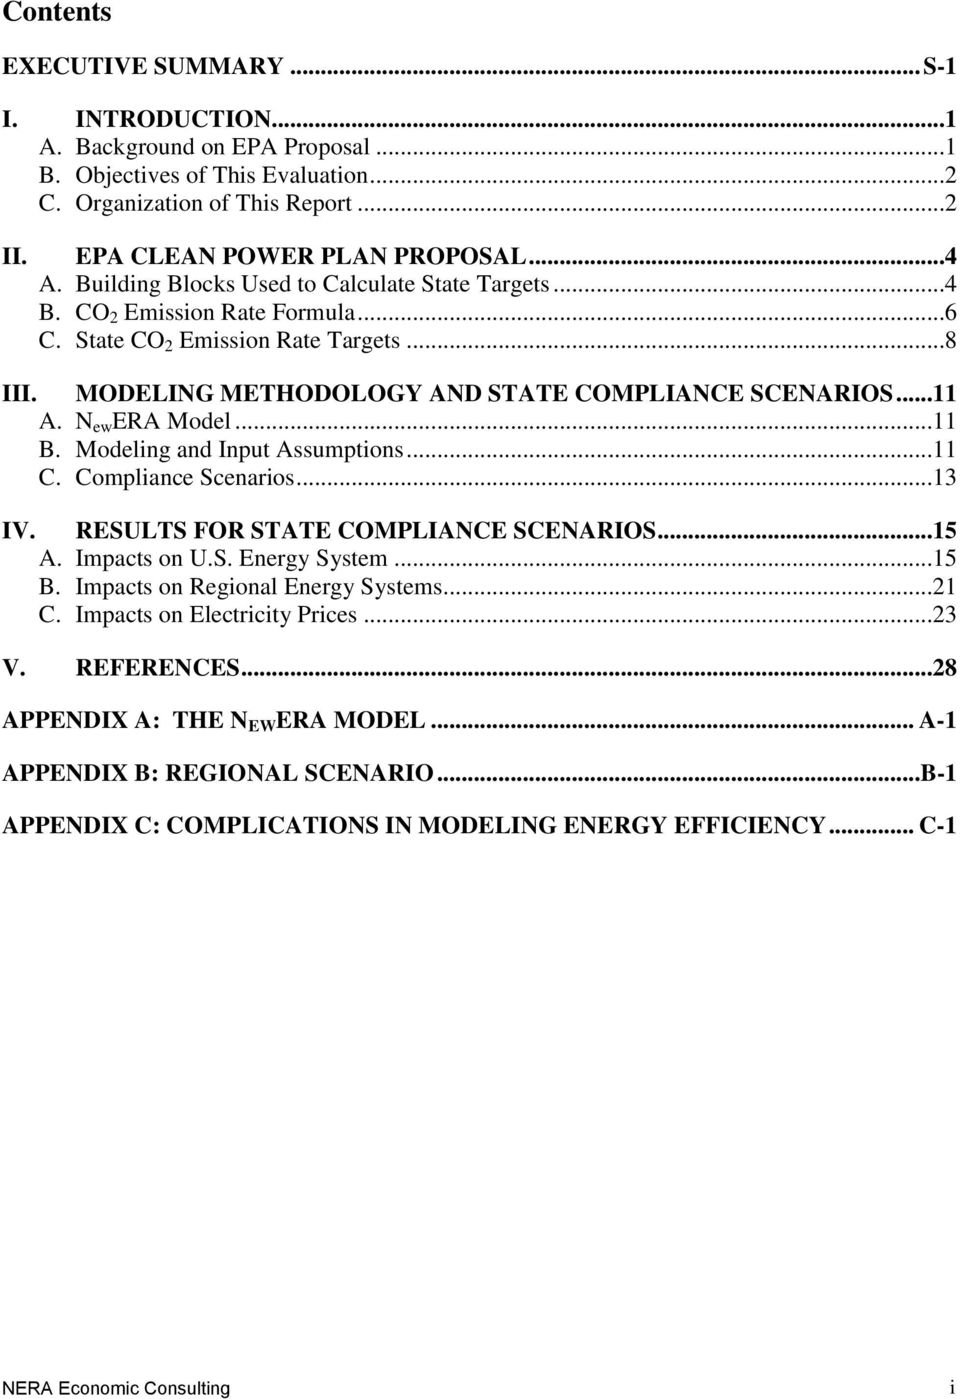 N ew ERA Model...11 B. Modeling and Input Assumptions...11 C. Compliance Scenarios...13 IV. RESULTS FOR STATE COMPLIANCE SCENARIOS...15 A. Impacts on U.S. Energy System...15 B.